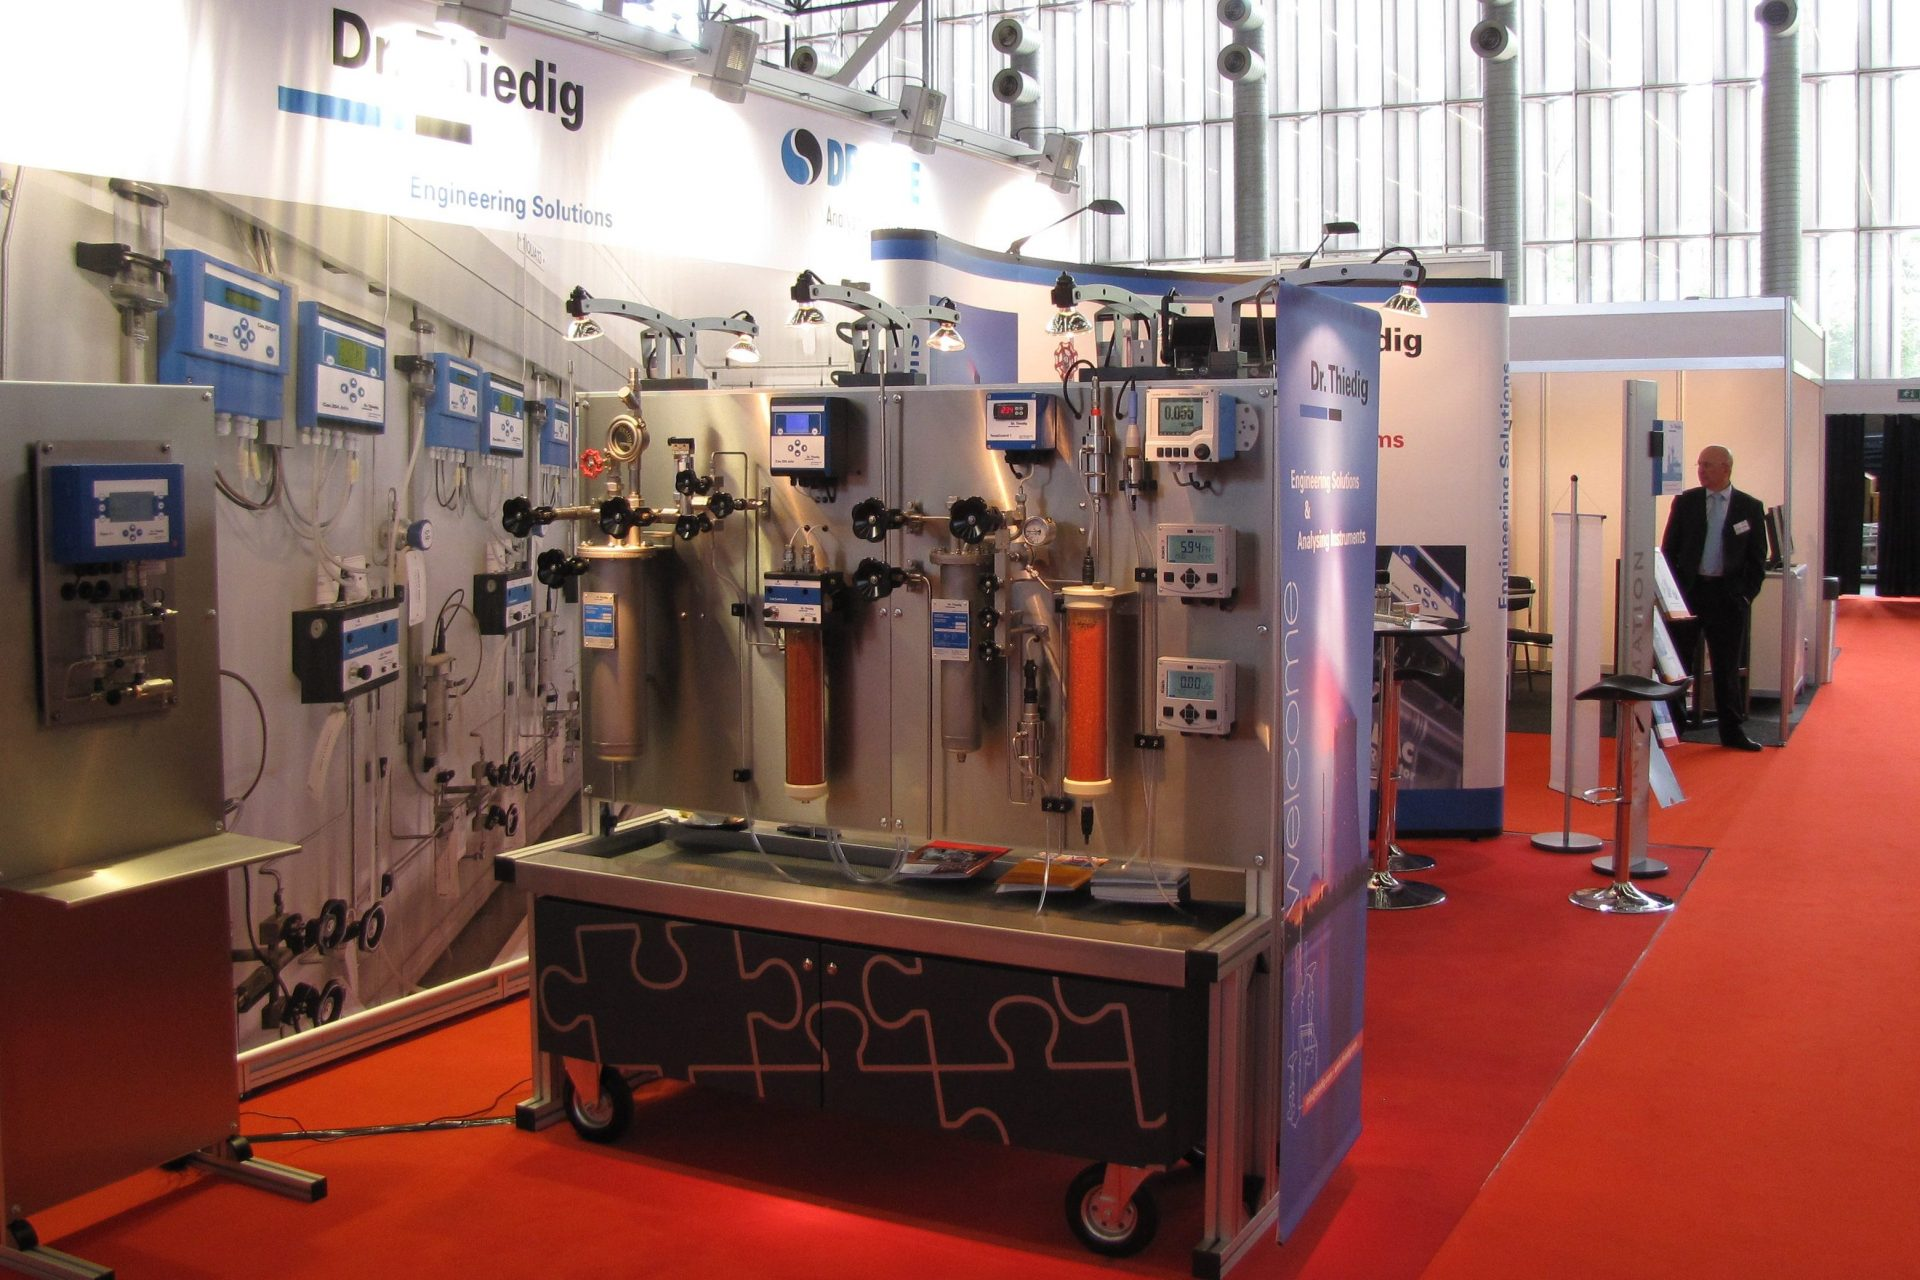 Dr. Thiedig PowerGen Europe Amsterdam 2010 (121)